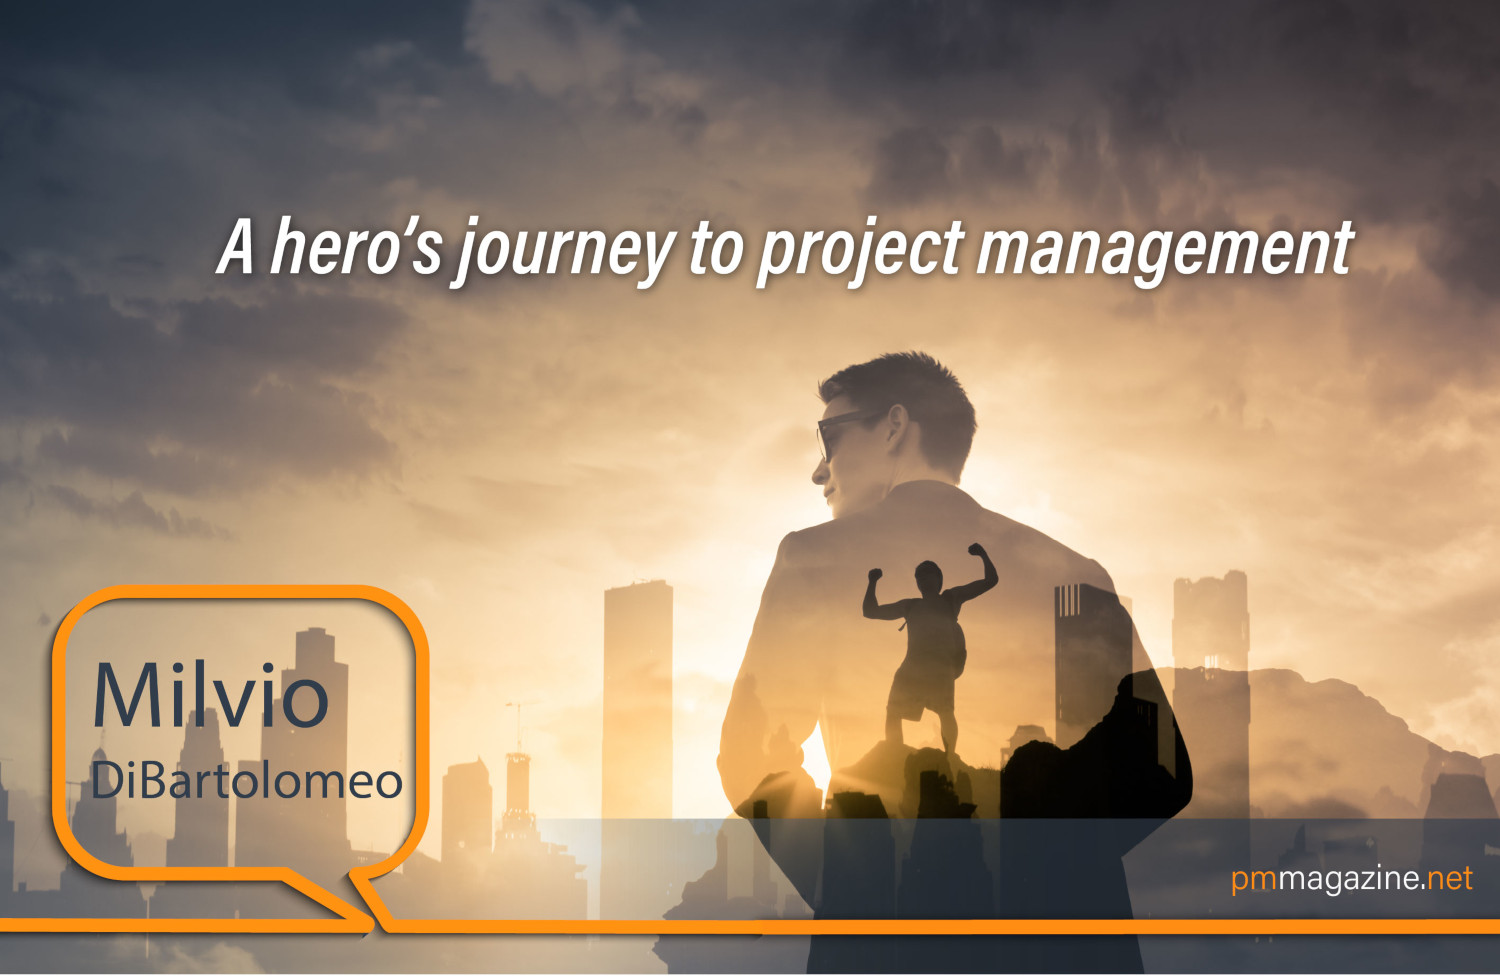 A hero's journey to project management